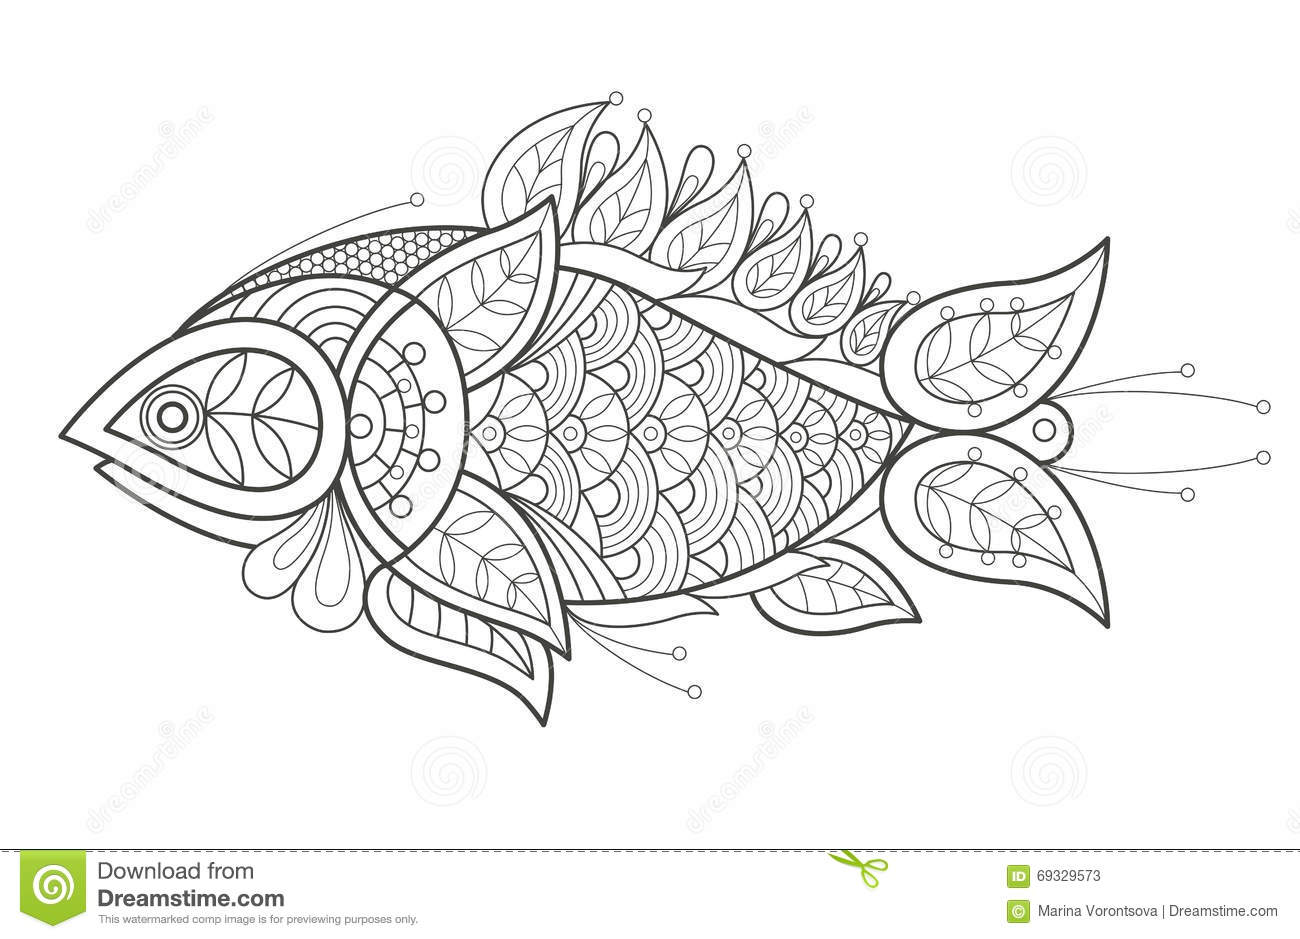 Sea Cucumber Coloring Pages